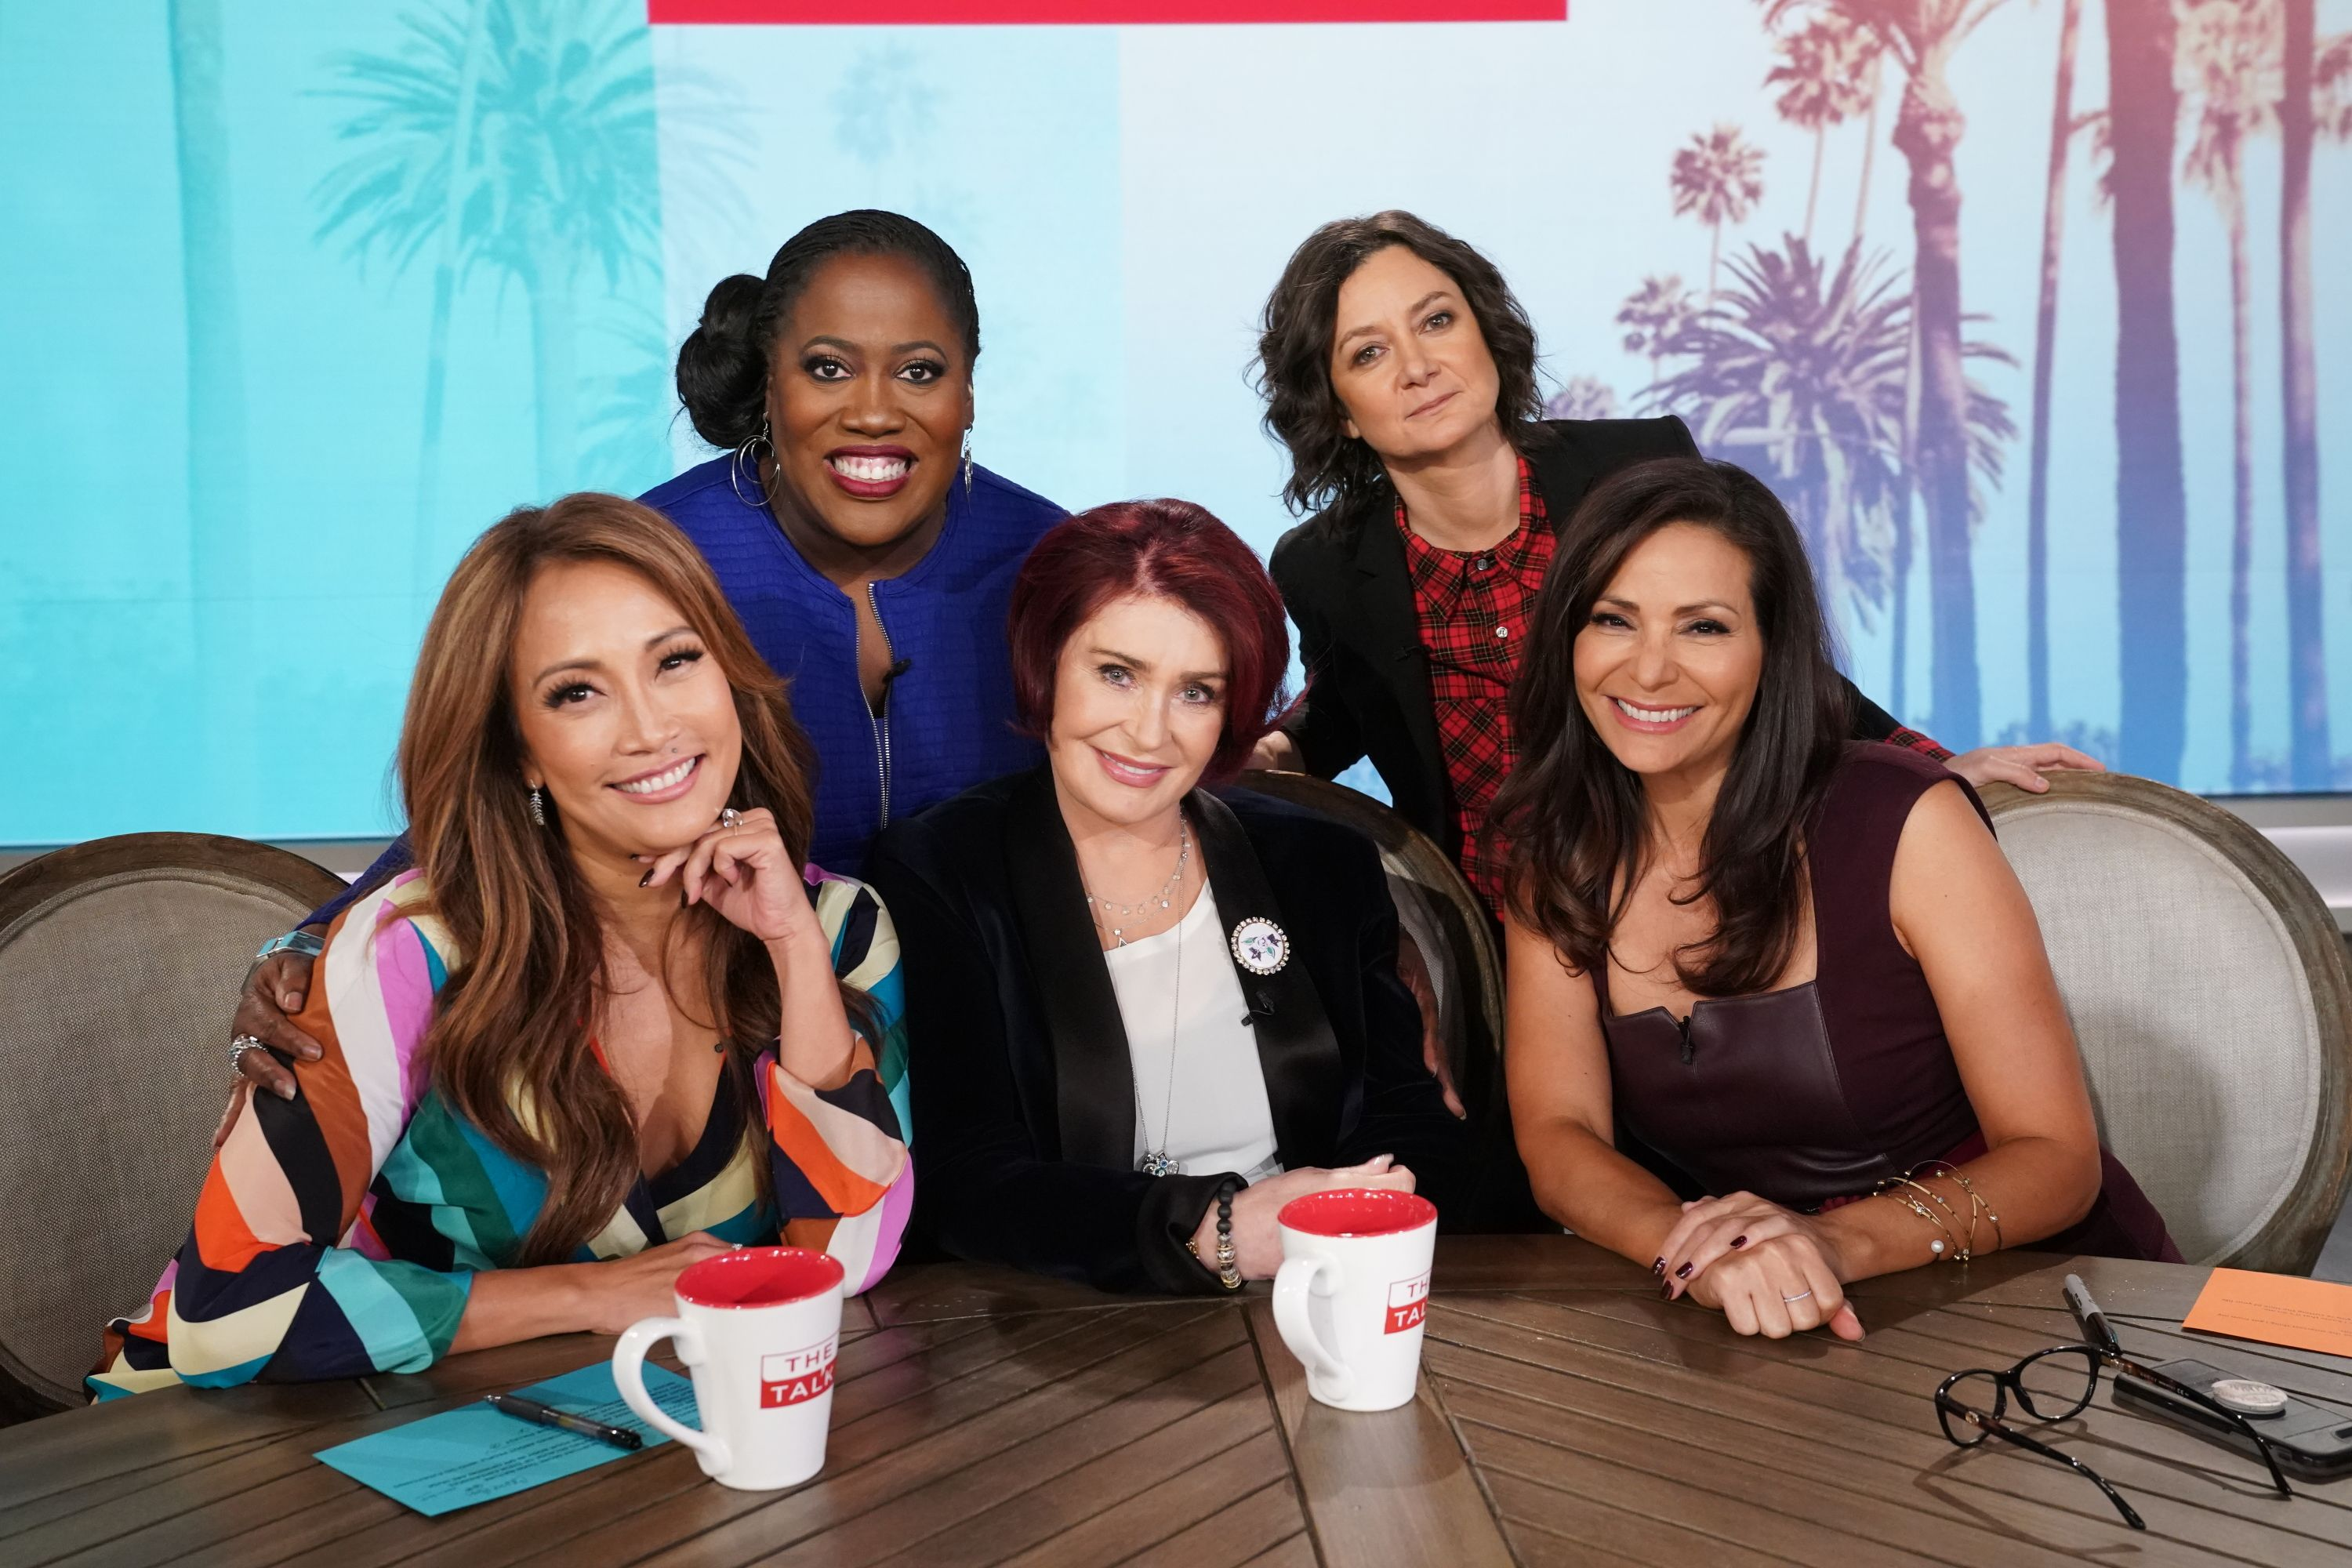 """Sheryl Underwood, Carrie Ann Inaba, Sharon Osbourne, Constance Marie, and Sara Gilbert on the set of """"The Talk"""" in November 2018   Source: Getty Images"""